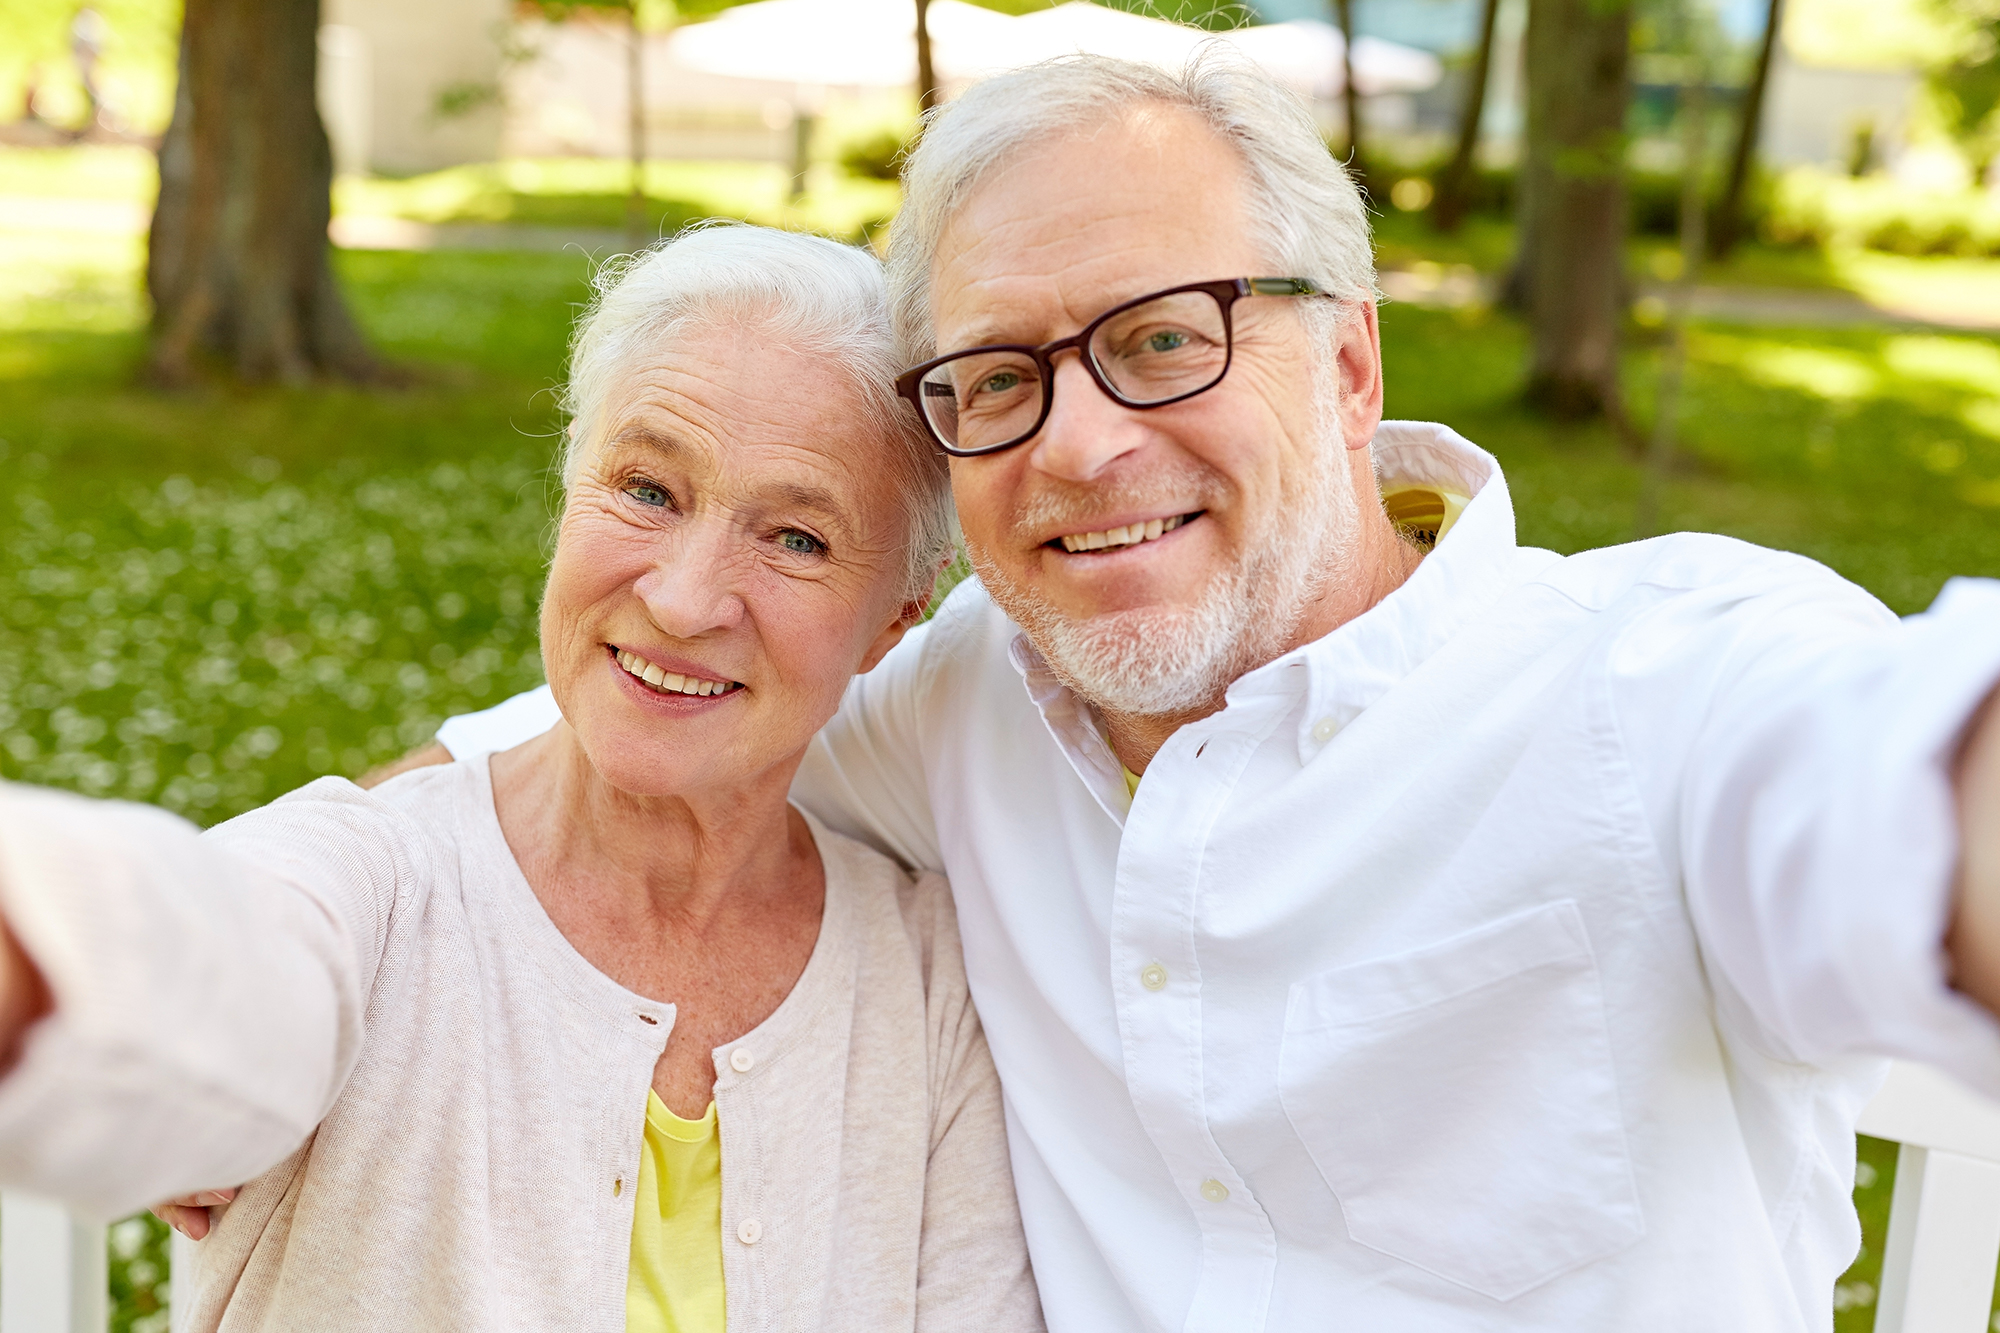 Mature Online Dating Service No Payment Needed